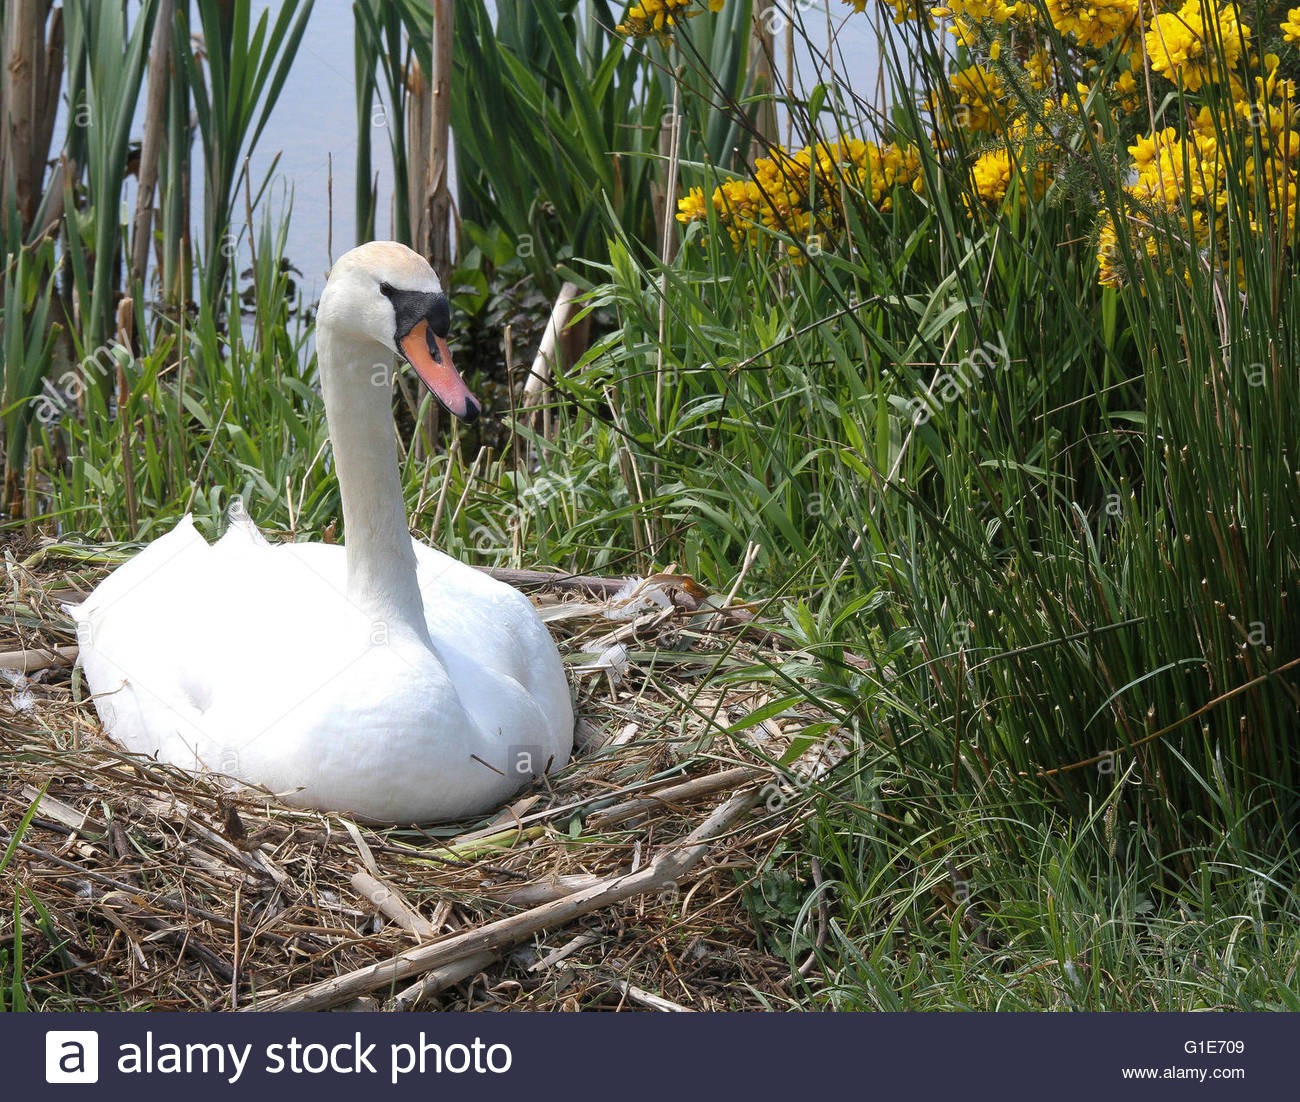 Castle Espie Wildfowl & Wetlands Centre Strangford Lough, Castle Espie, Northern Ireland, UK. 13th May 2016 Mute swan on the ...